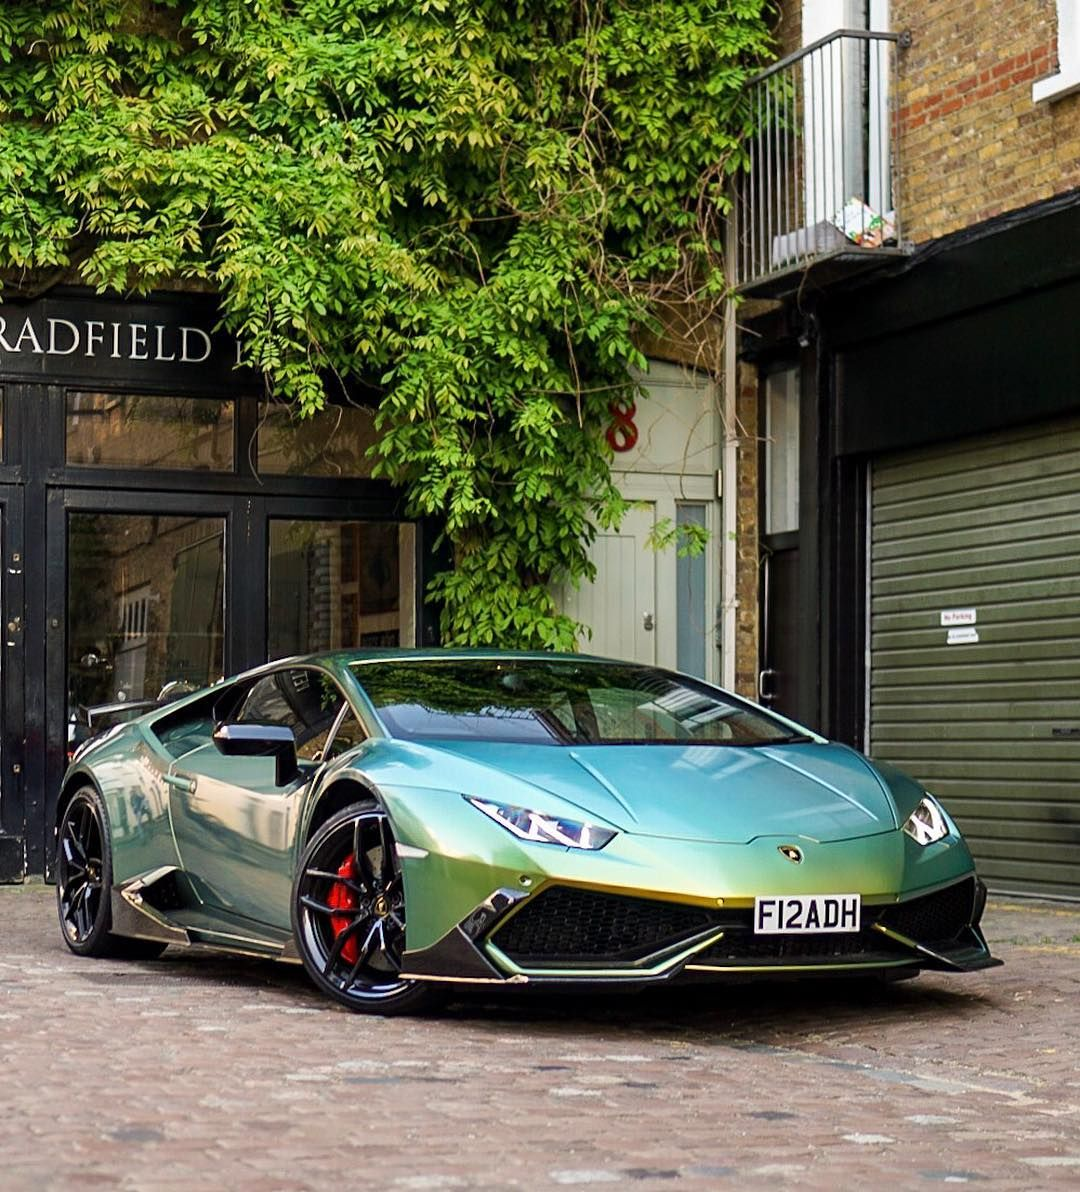 One Of The Crazier Ones In London Fuaadhh Cars247 Official Photographer Lamborghinihuracan Multicolor Sports Cars Lamborghini Lamborghini Dream Cars